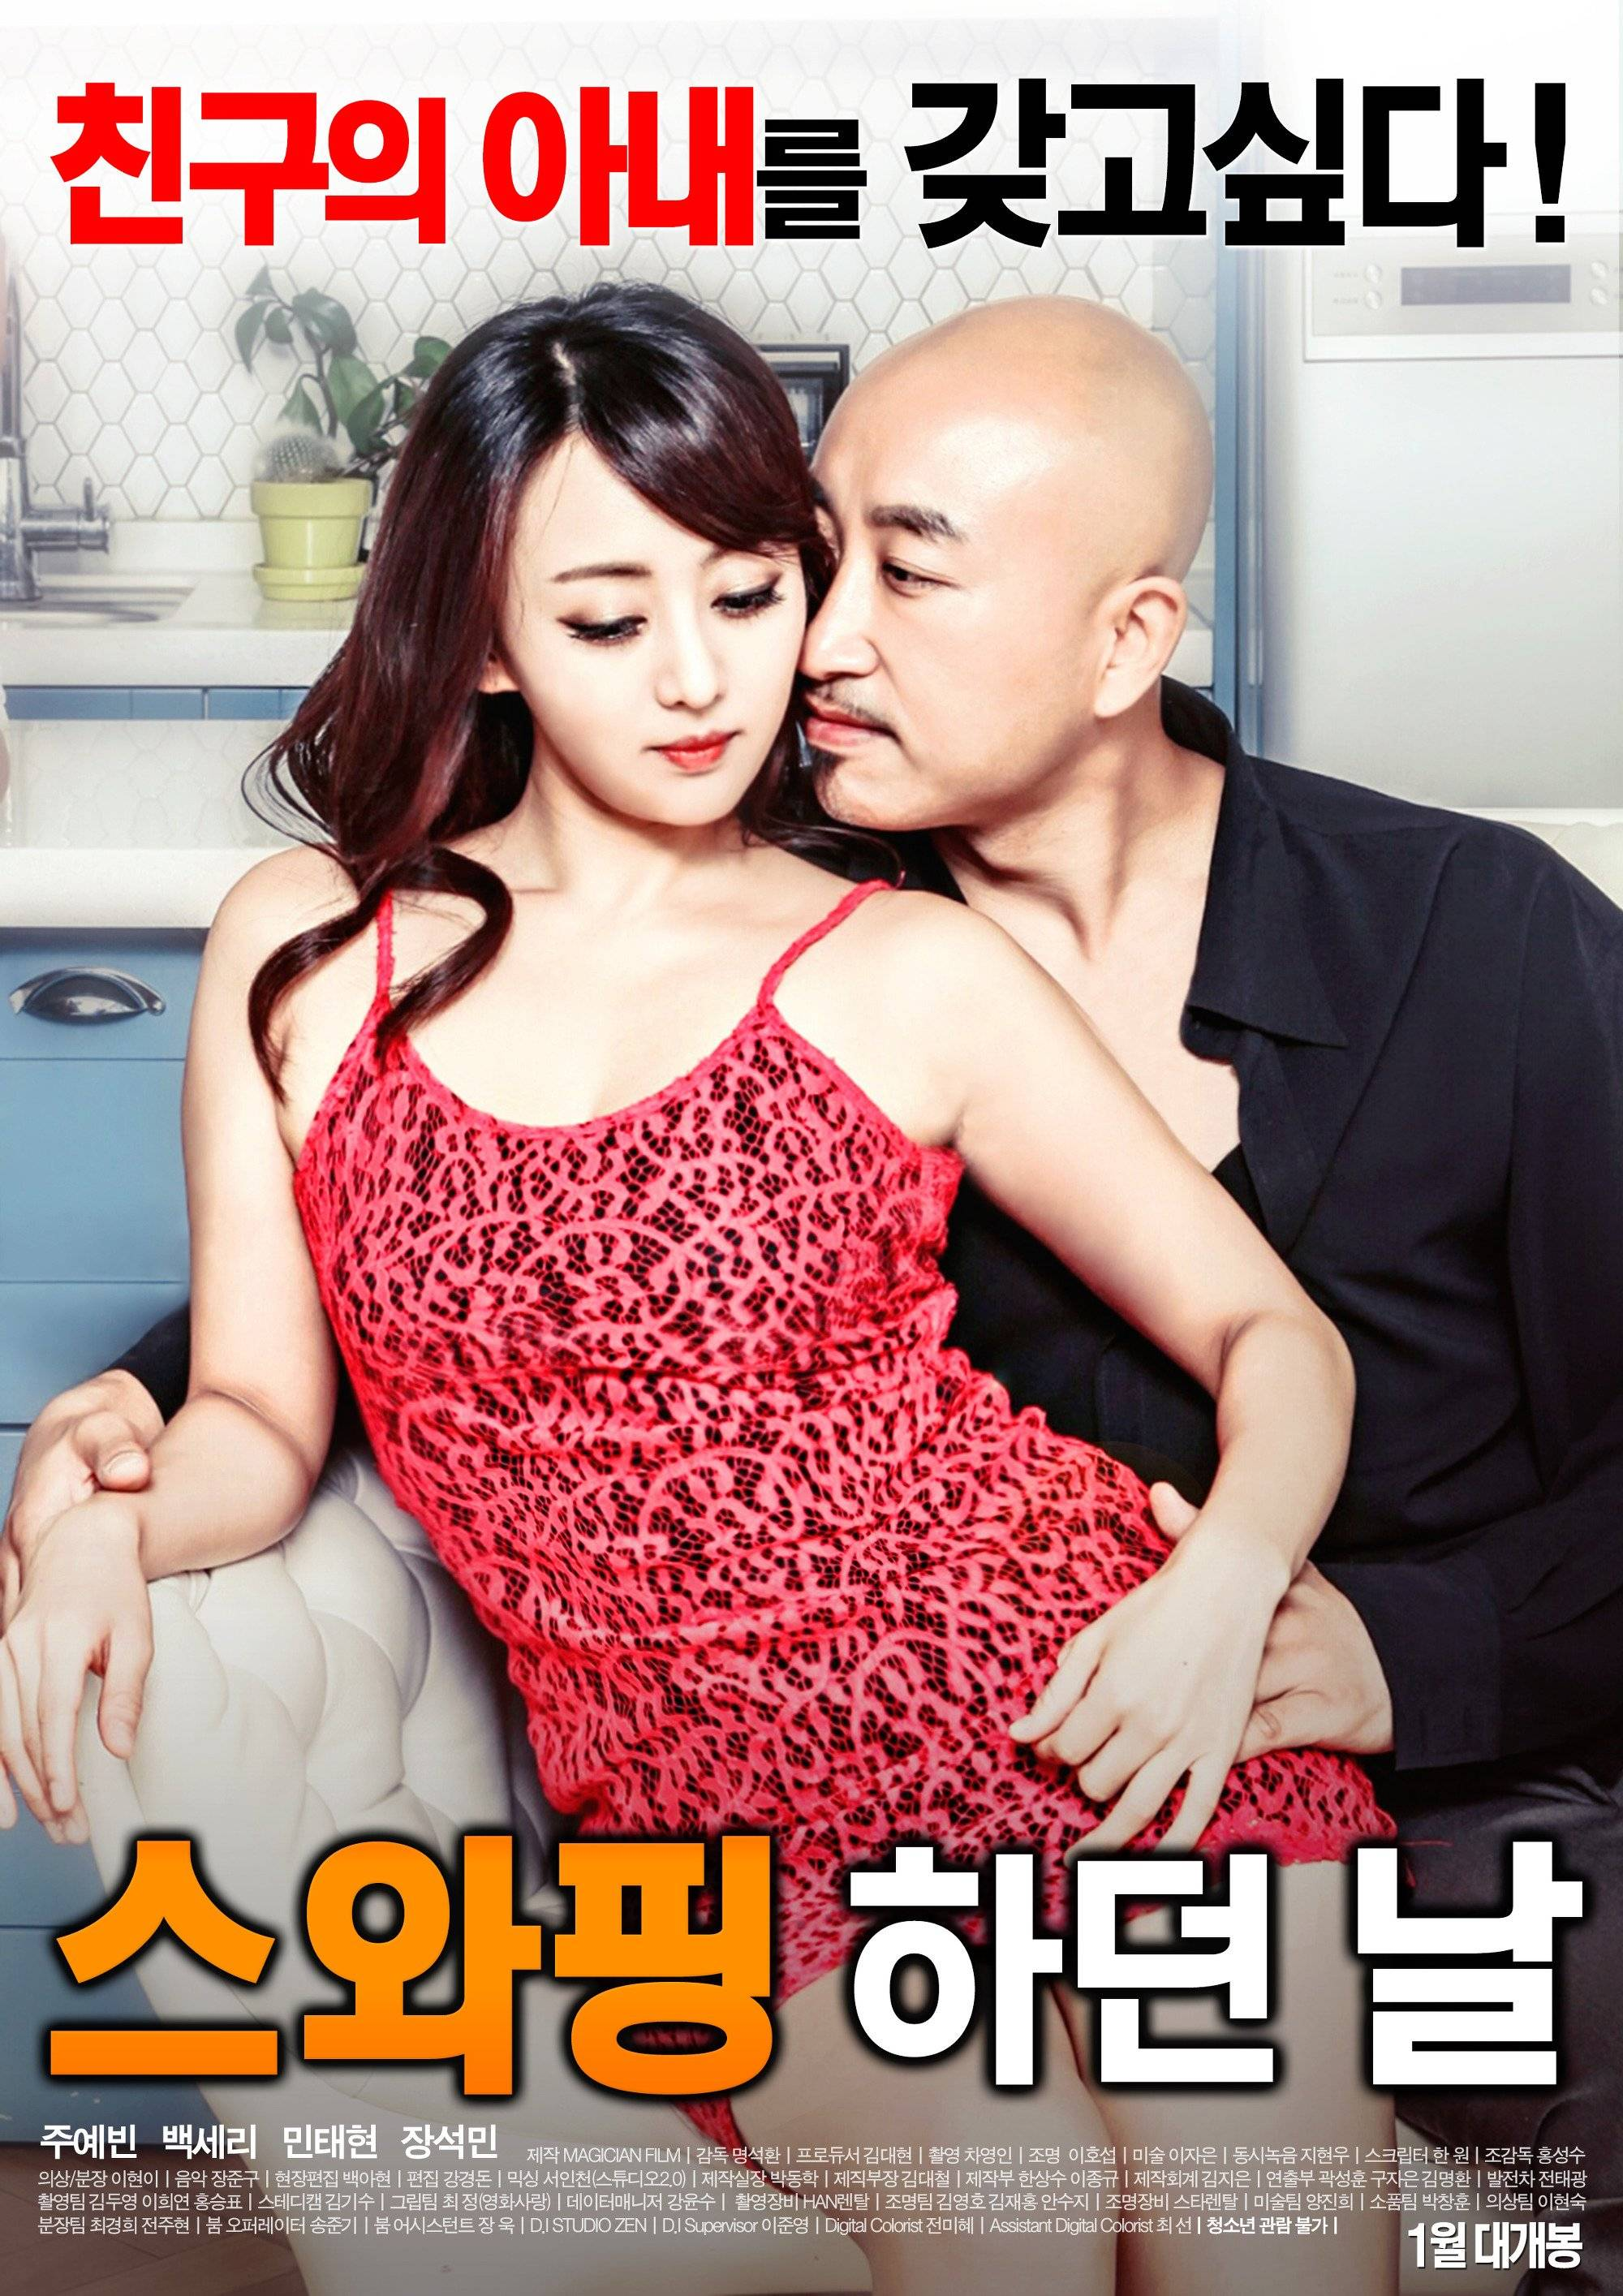 The Day of Swapping (스와핑 하던 날) - Movie - Picture Gallery